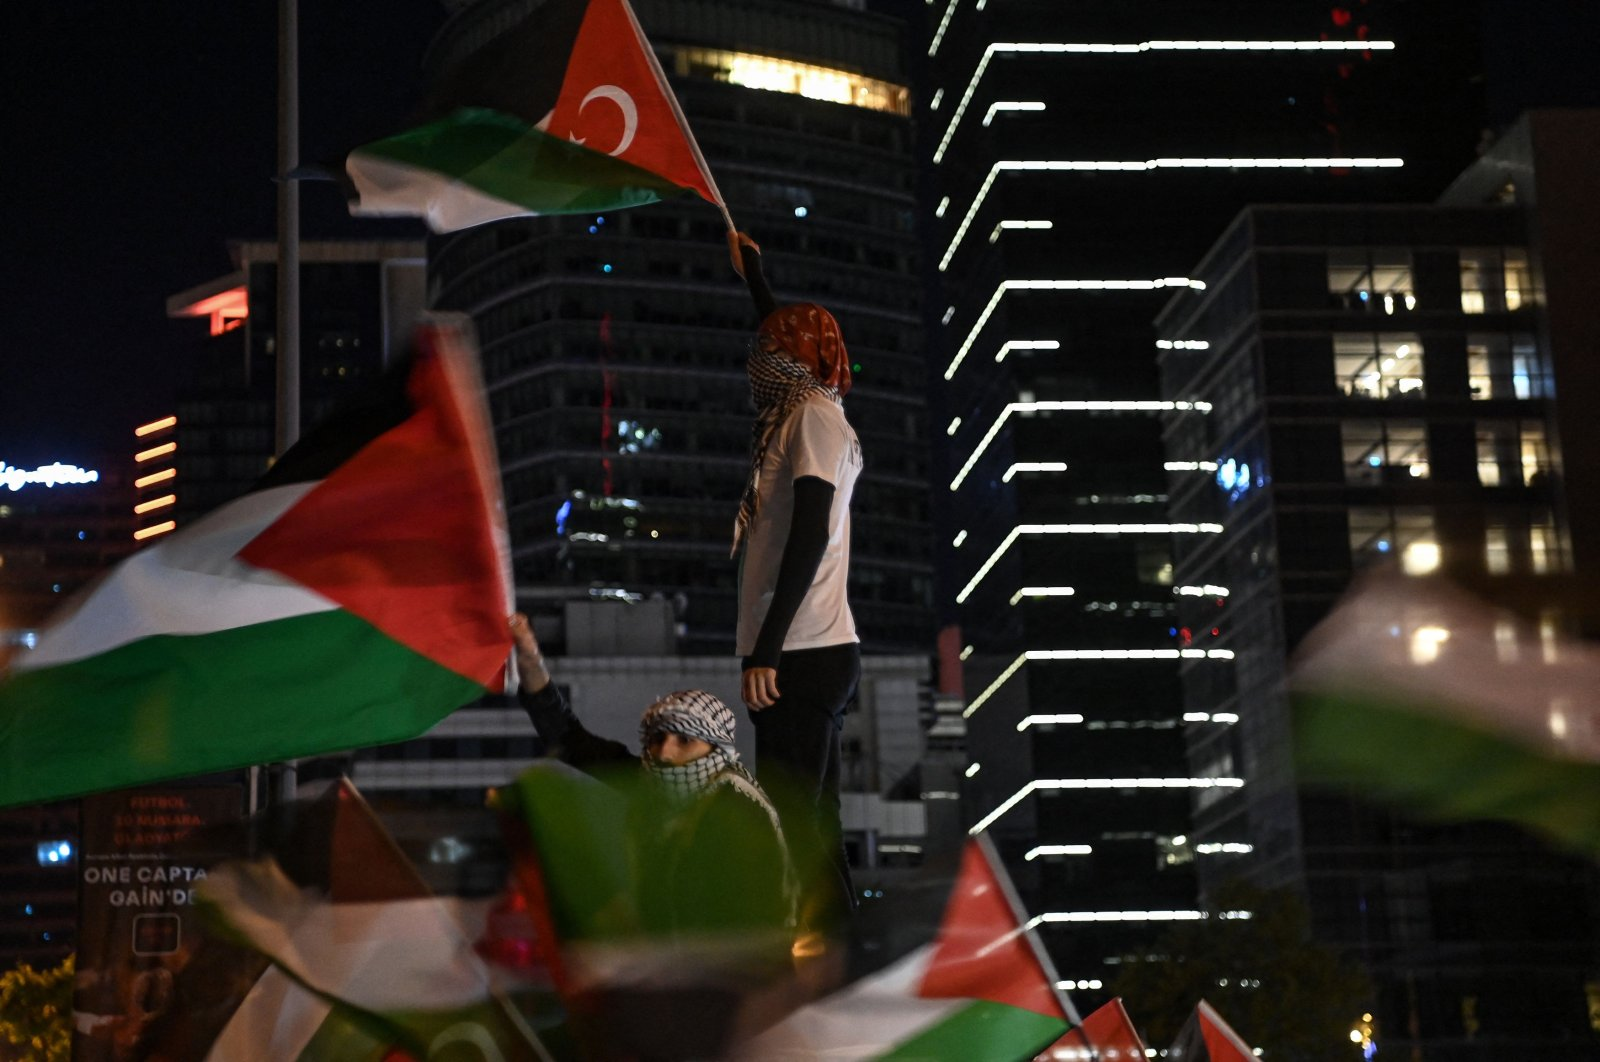 Protesters hold Palestinian and Turkish national flags and chant slogans during a protest against Israel in front of the Israeli Consulate in Istanbul on May 9, 2021. (AFP Photo)